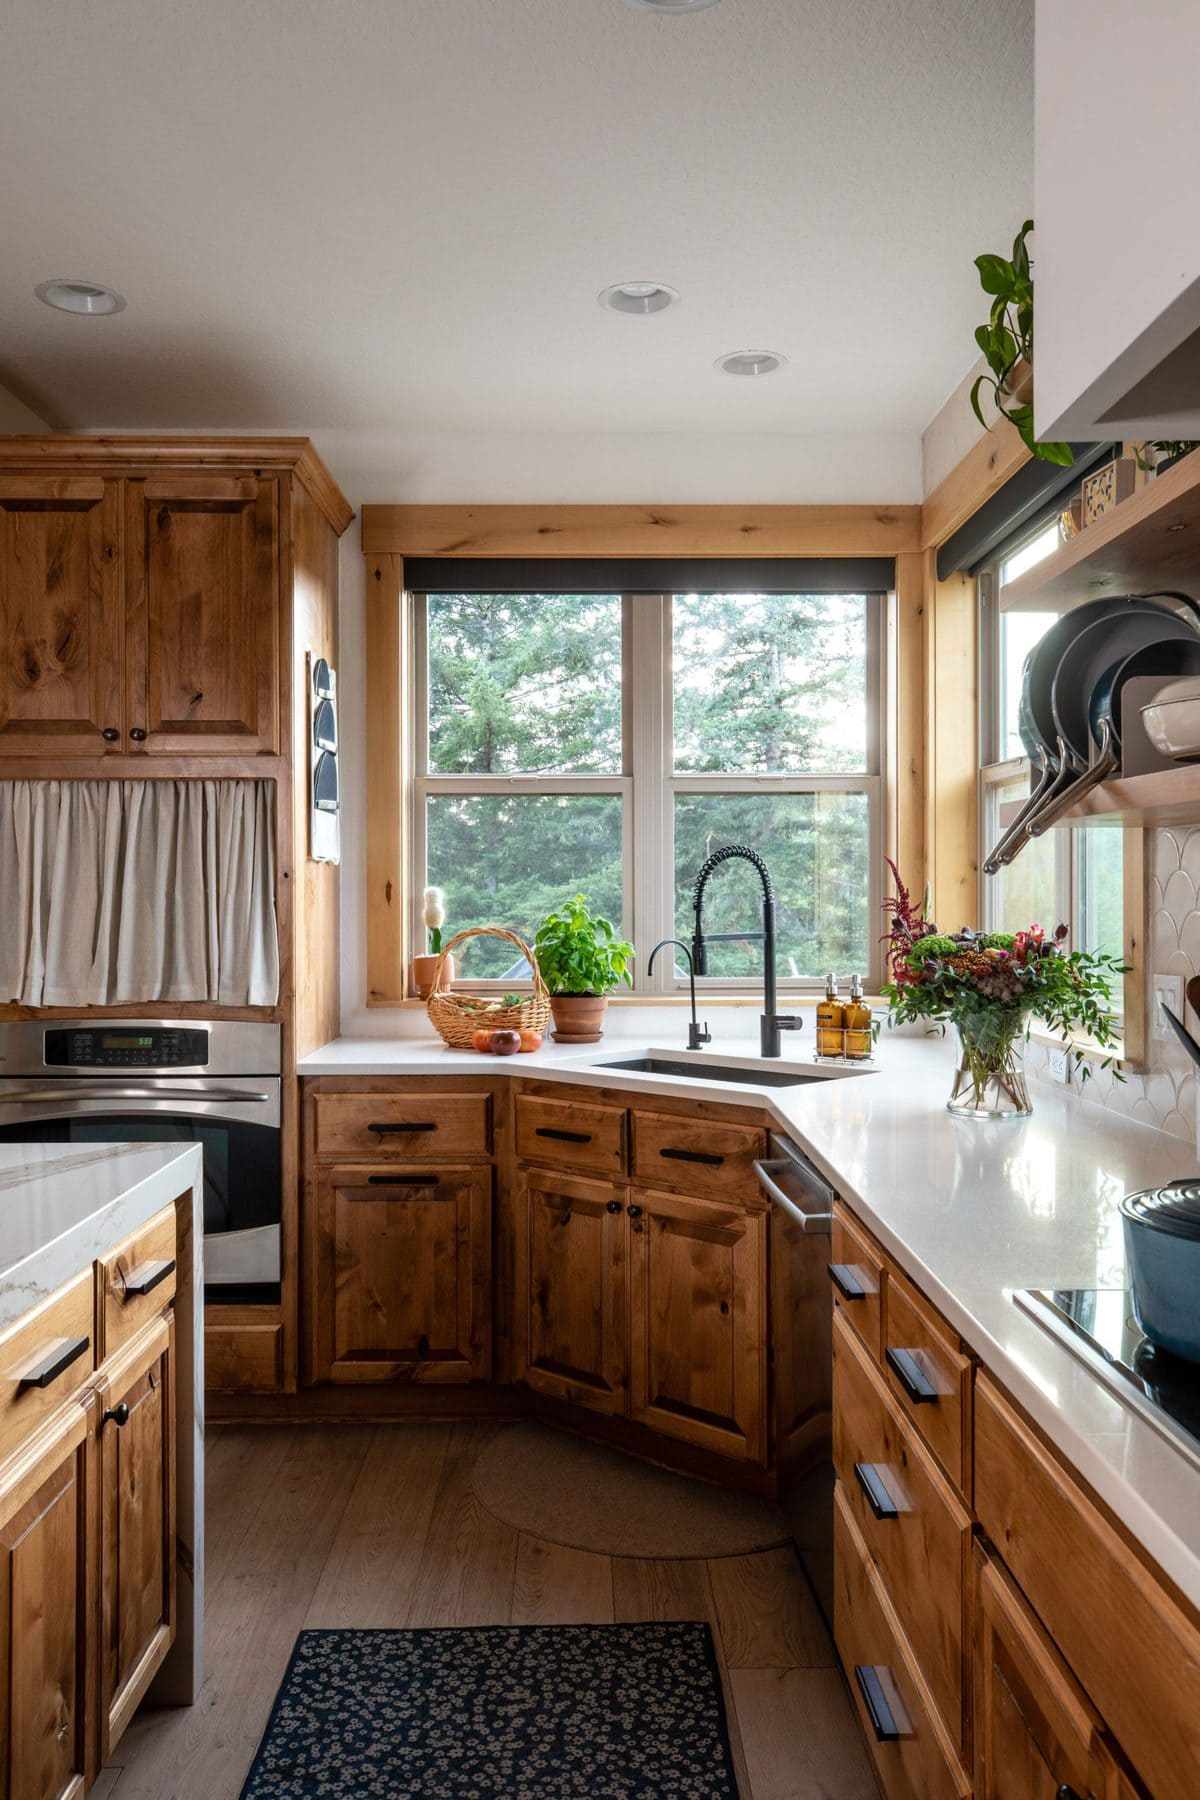 Shot of corner sink with light filled windows with pine trees in the background